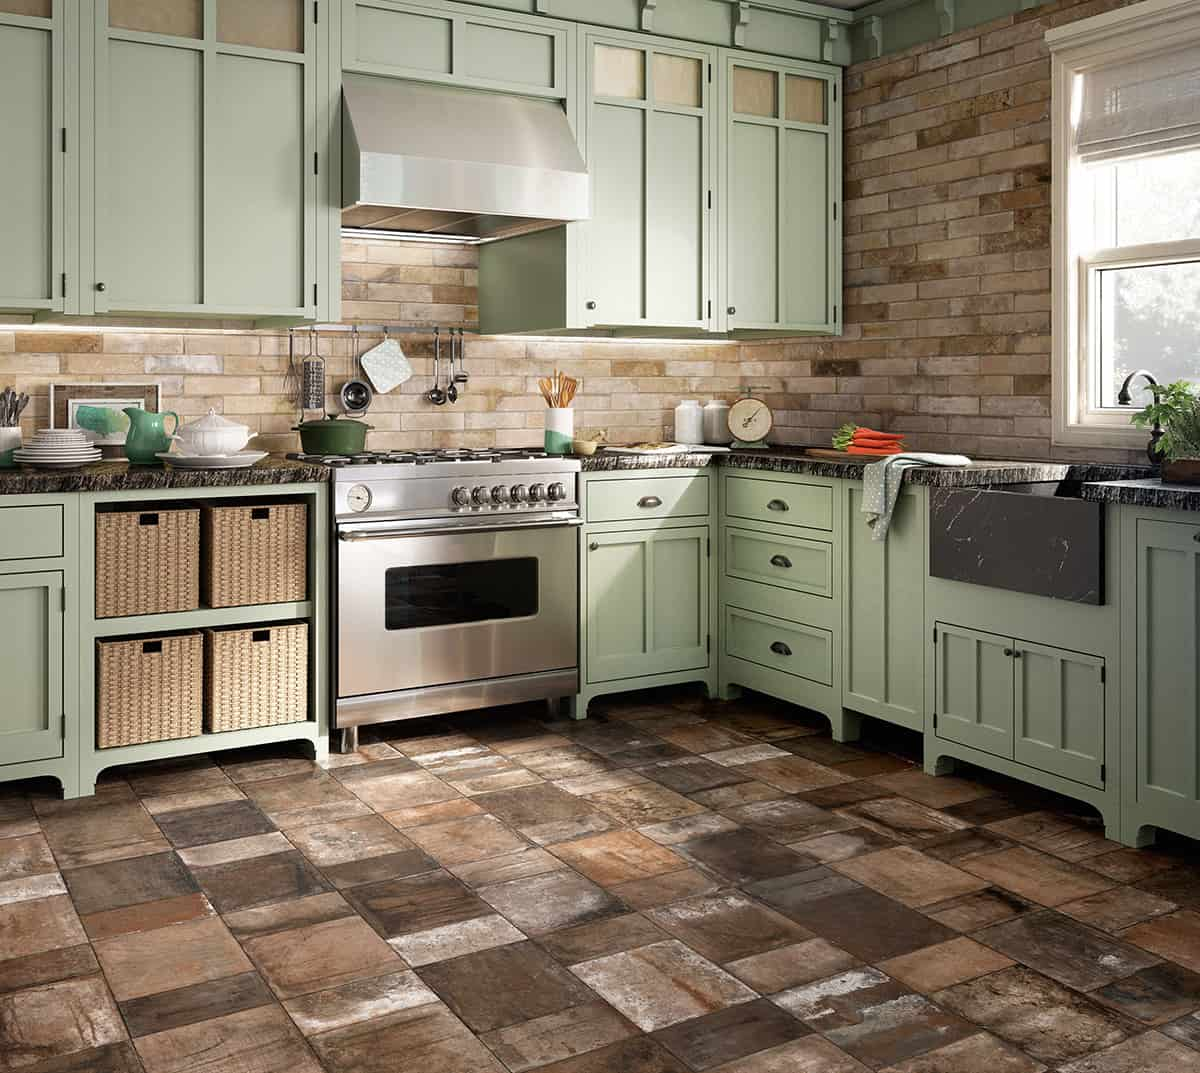 Tile Flooring For Kitchen: 25 Beautiful Tile Flooring Ideas For Living Room, Kitchen